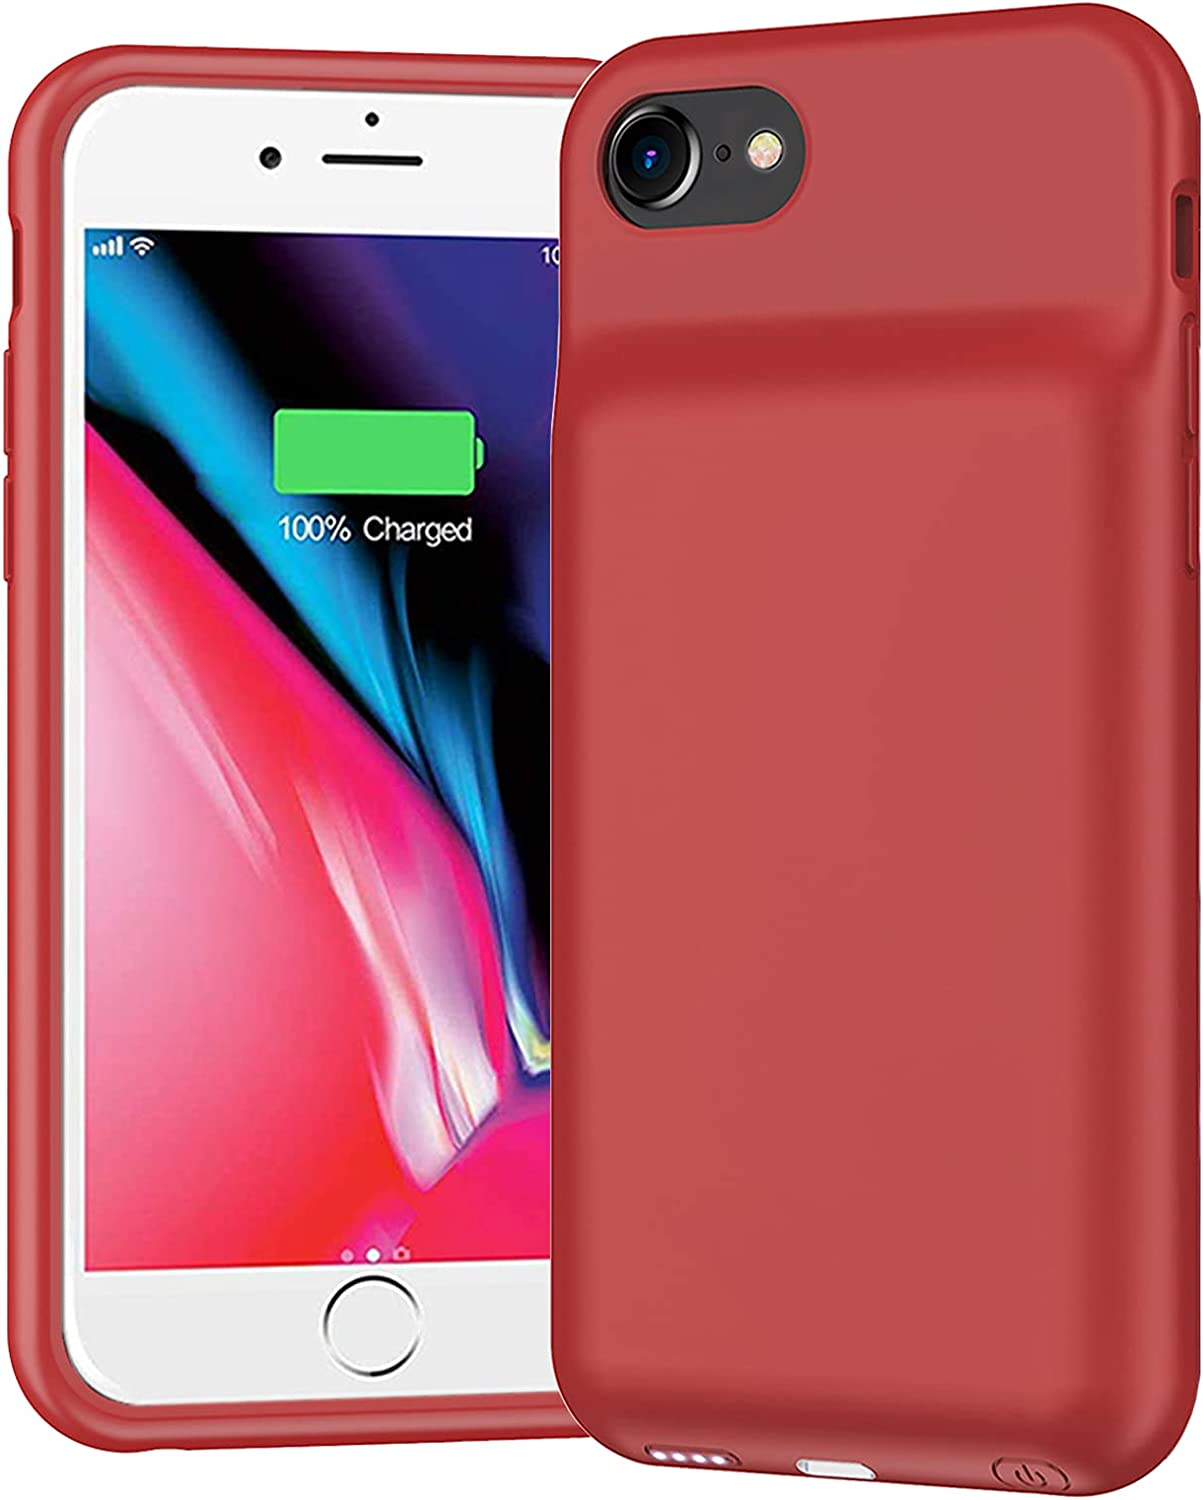 Battery Case for iPhone 7/8/6/6s/SE 2020, 6500mAh Portable Protective Charging Case Compatible with iPhone SE 2020/8/7/6/6s (4.7 inch) Extended Battery Charger Case (Red)